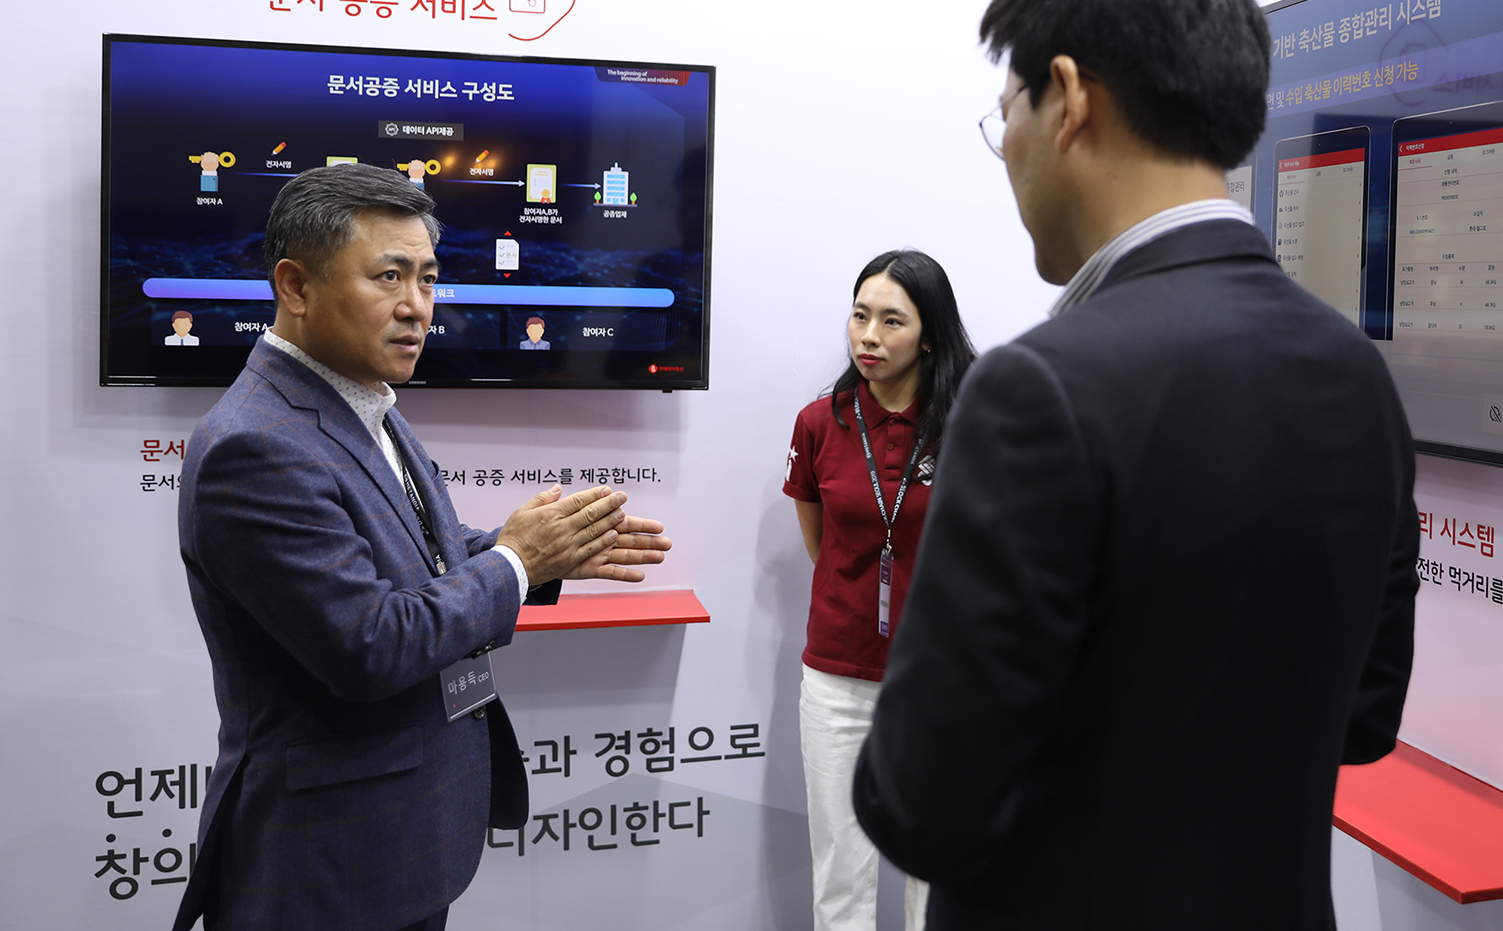 Released blockchain applied solutions in 'Blockchain Seoul 2019'